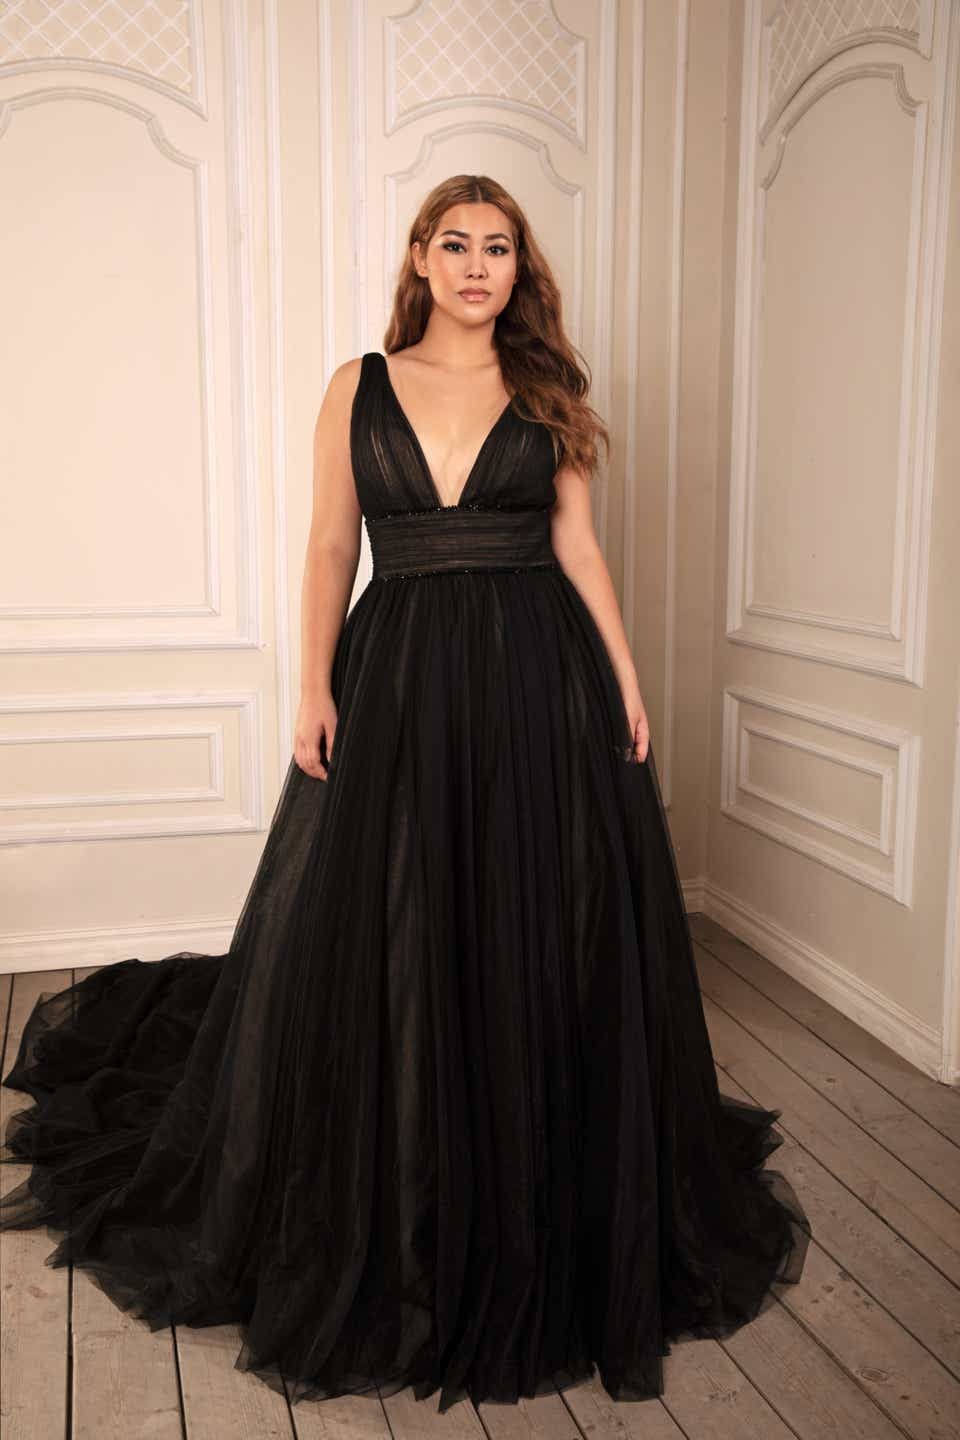 a black dress with plunging neckline by dany tabet